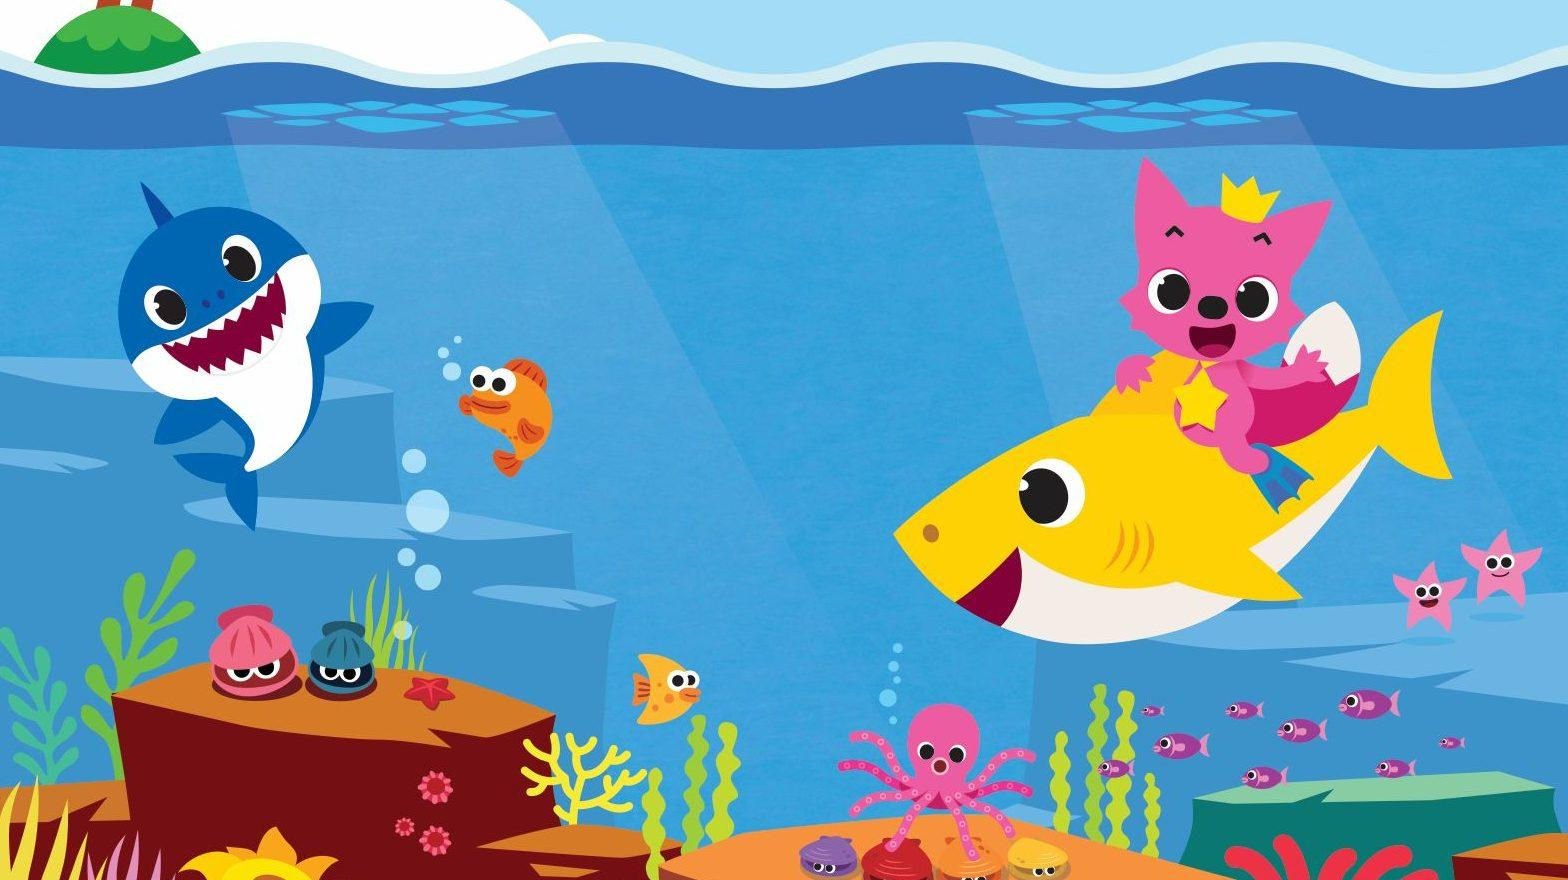 Let all the world sing clipart vector freeuse download The story behind the astonishingly viral Baby Shark YouTube video ... vector freeuse download